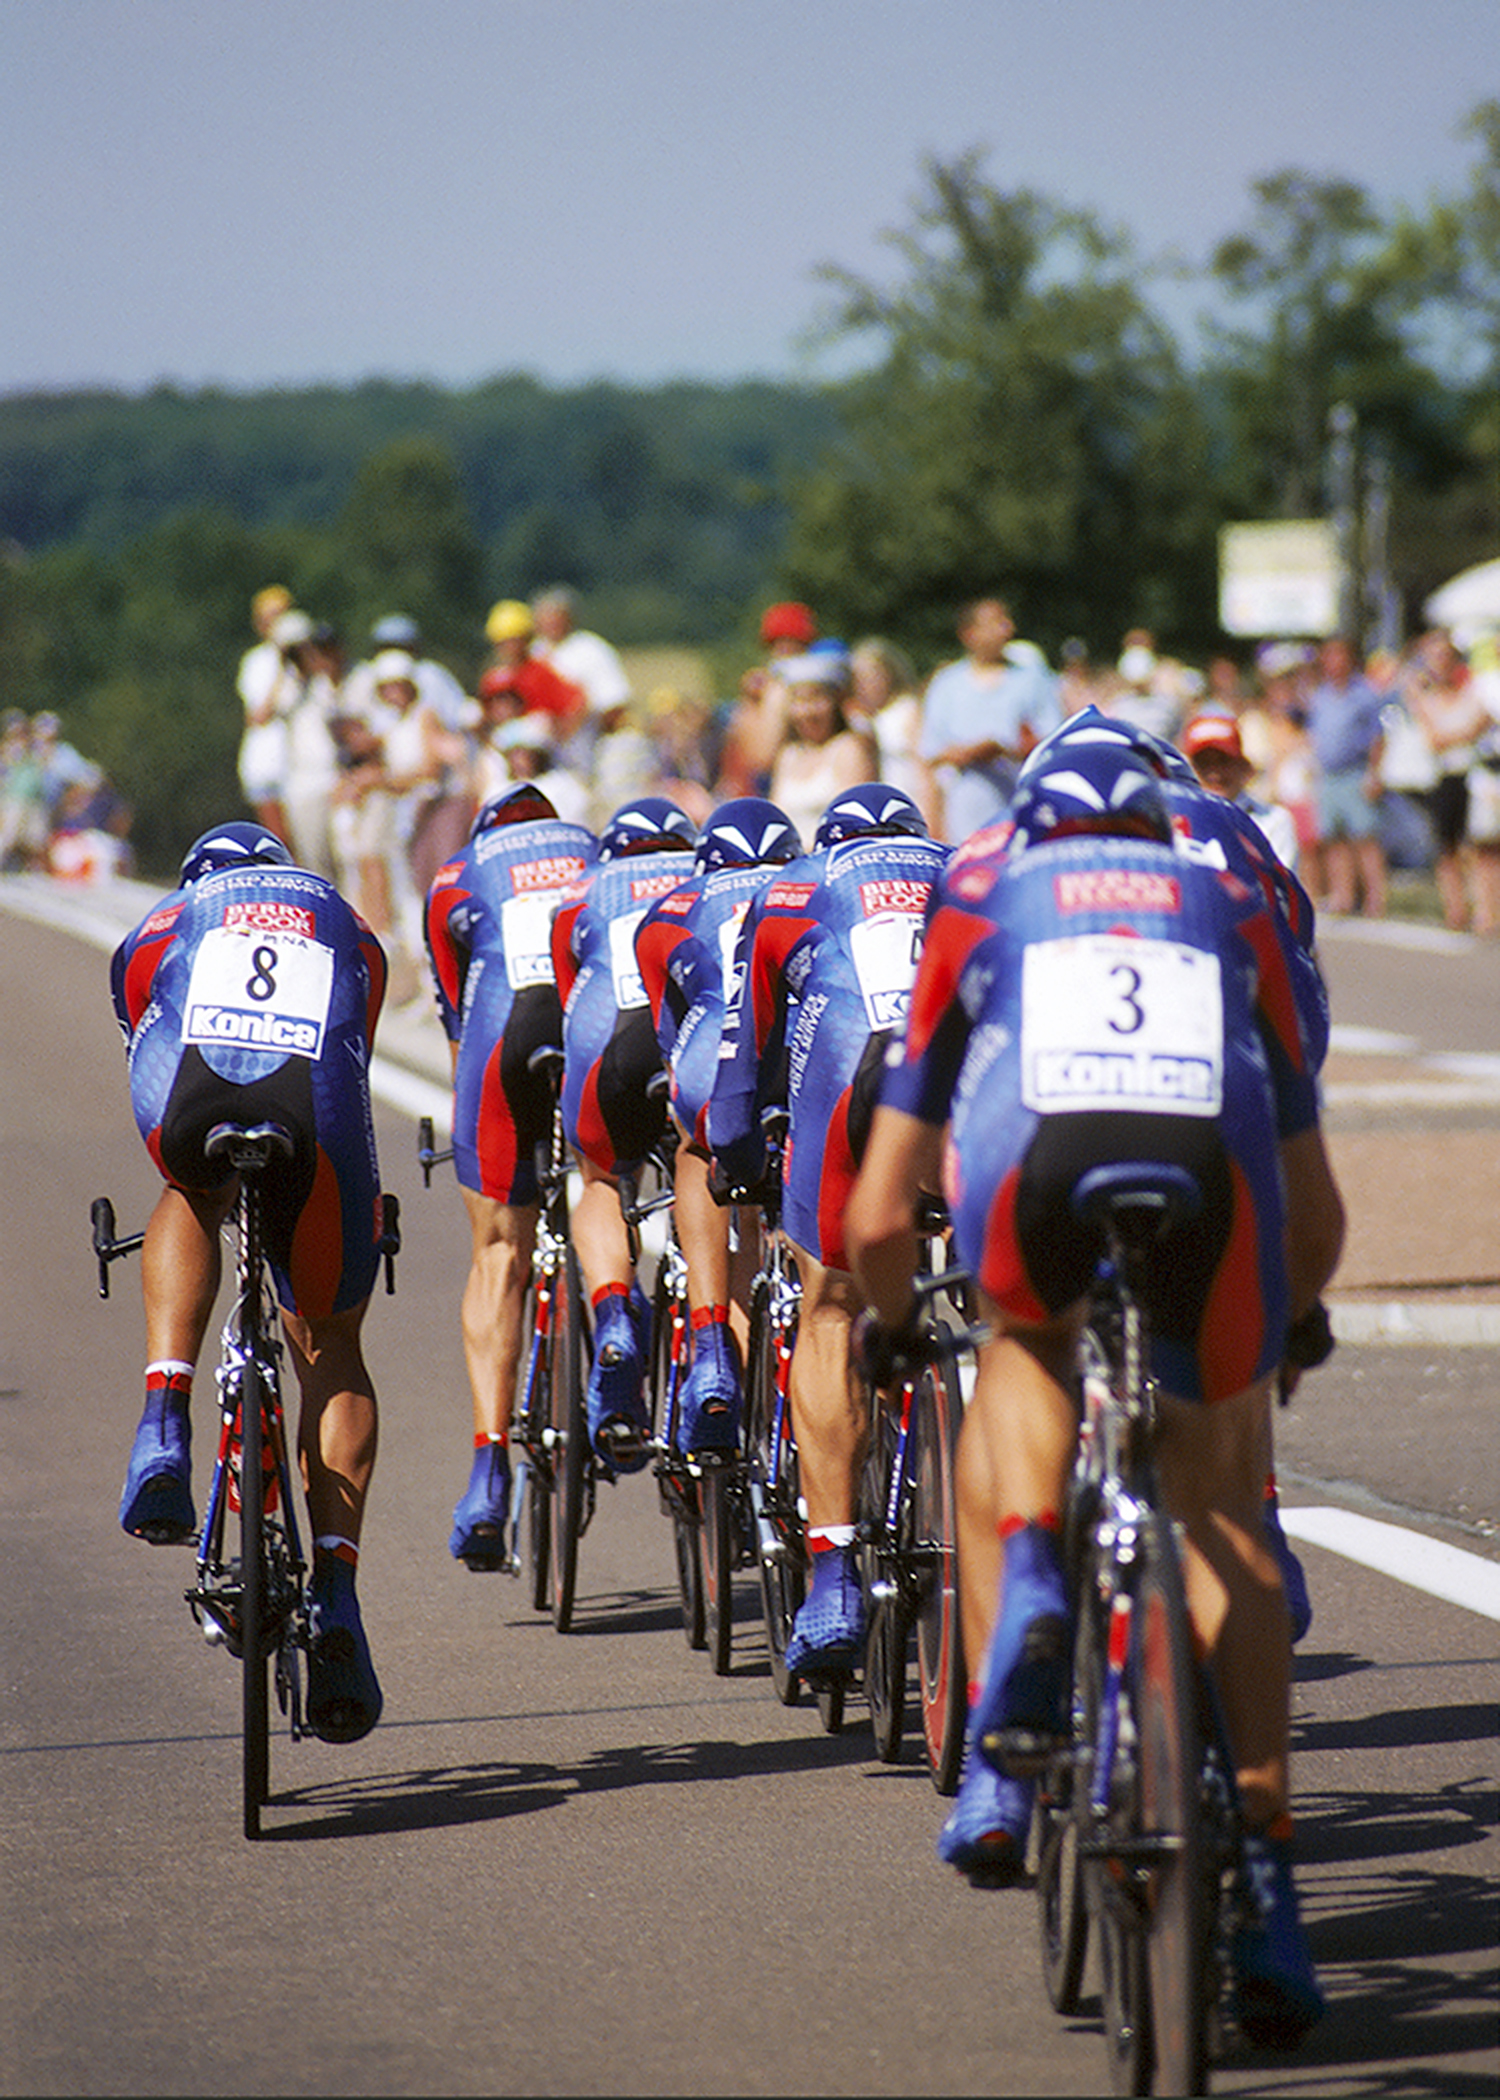 The United States Postal Service Team during the Team Time Trial at the Tour De France. Shot on film.